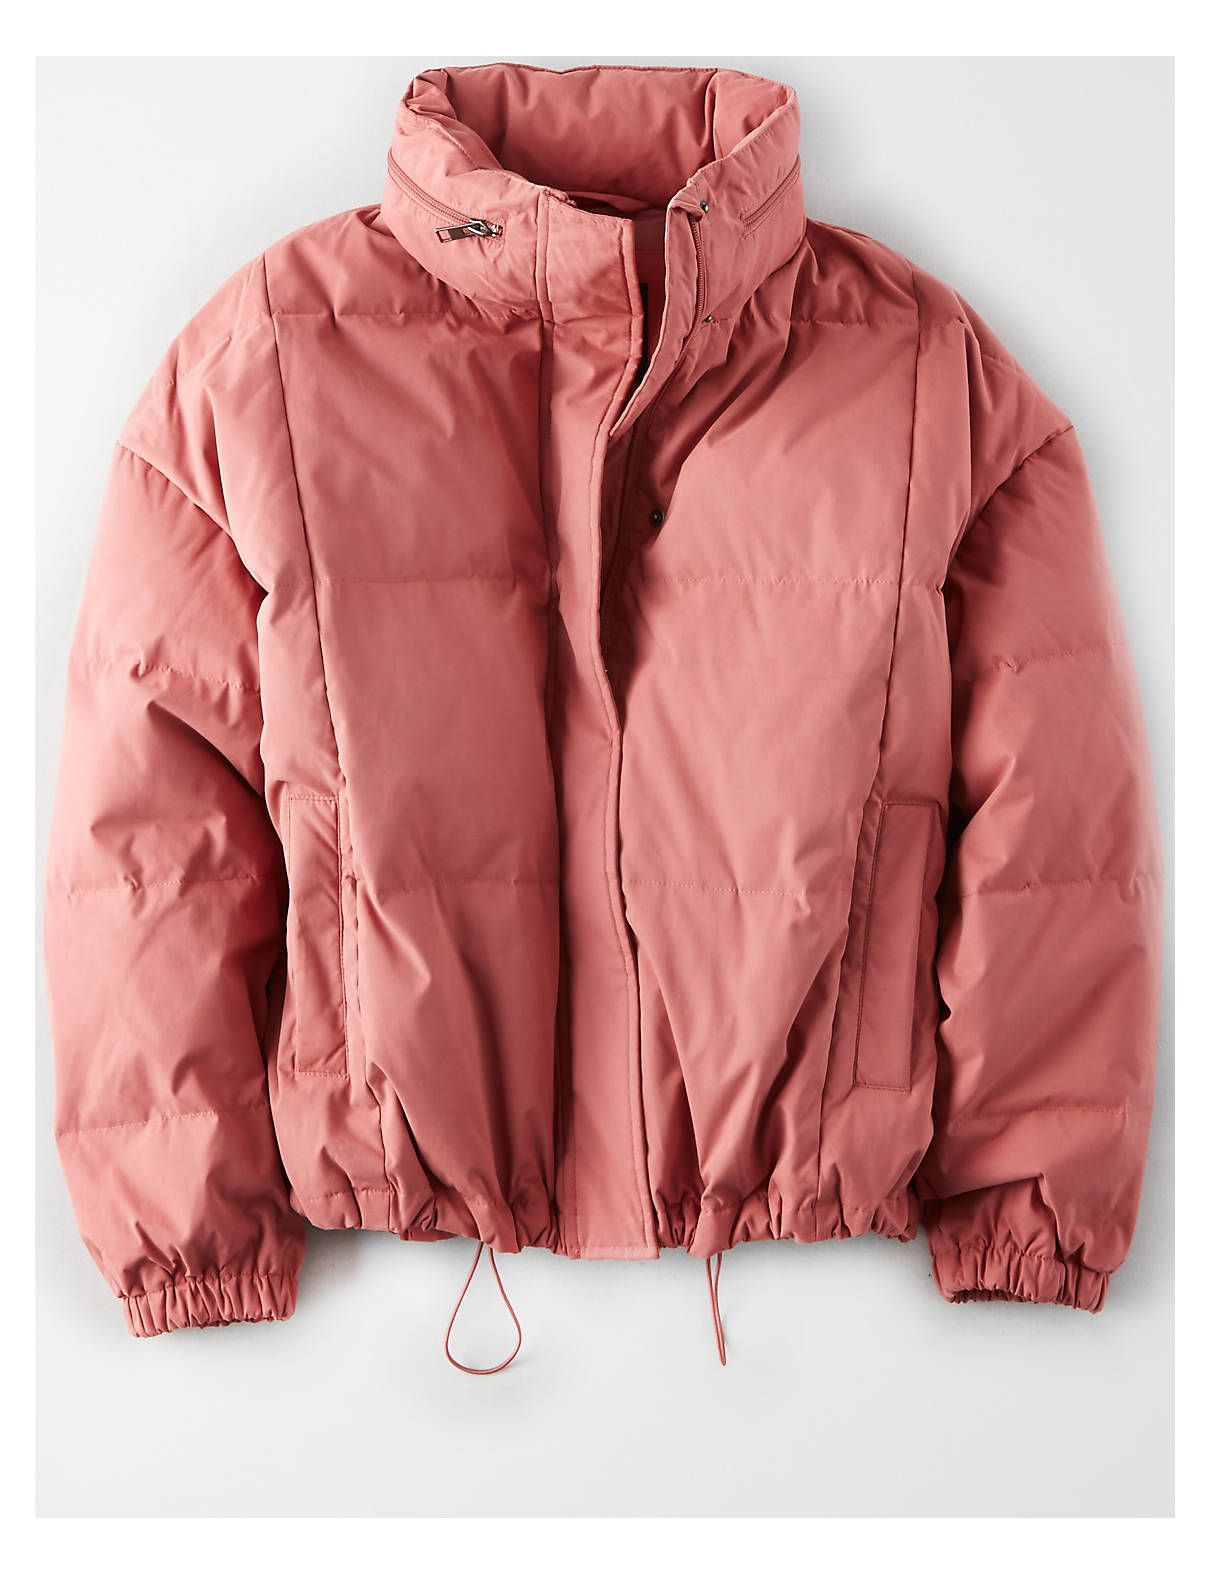 Ae Dolman Sleeve Puffer Jacket Pink American Eagle Outfitters Shop Womens Jackets Mens Outfitters Clothes [ 1575 x 1211 Pixel ]